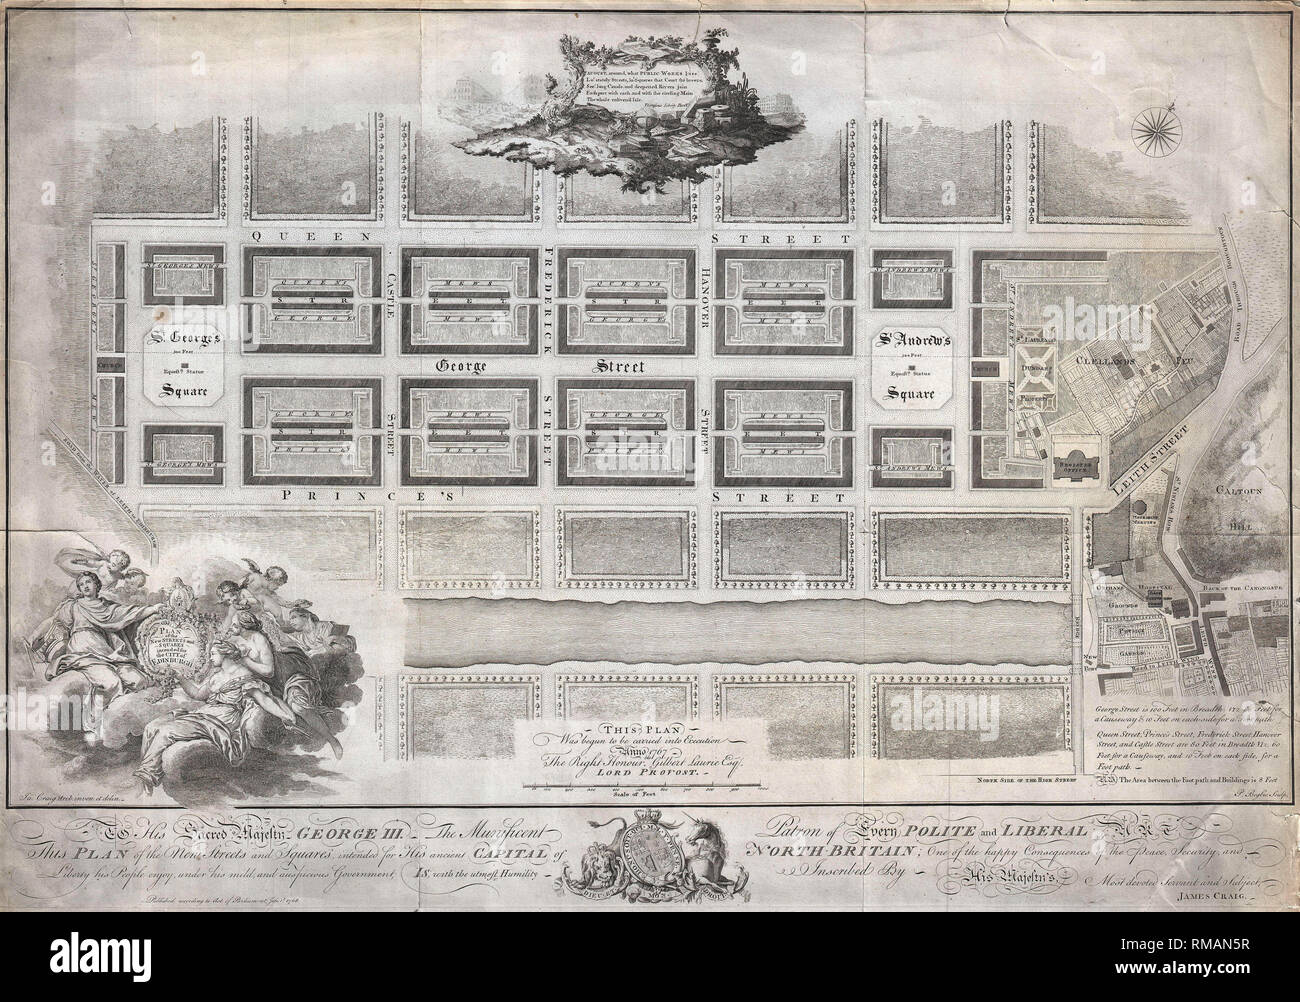 Plan of the New Streets and Squares intended for the city of Edinburgh. 1768 - Stock Image